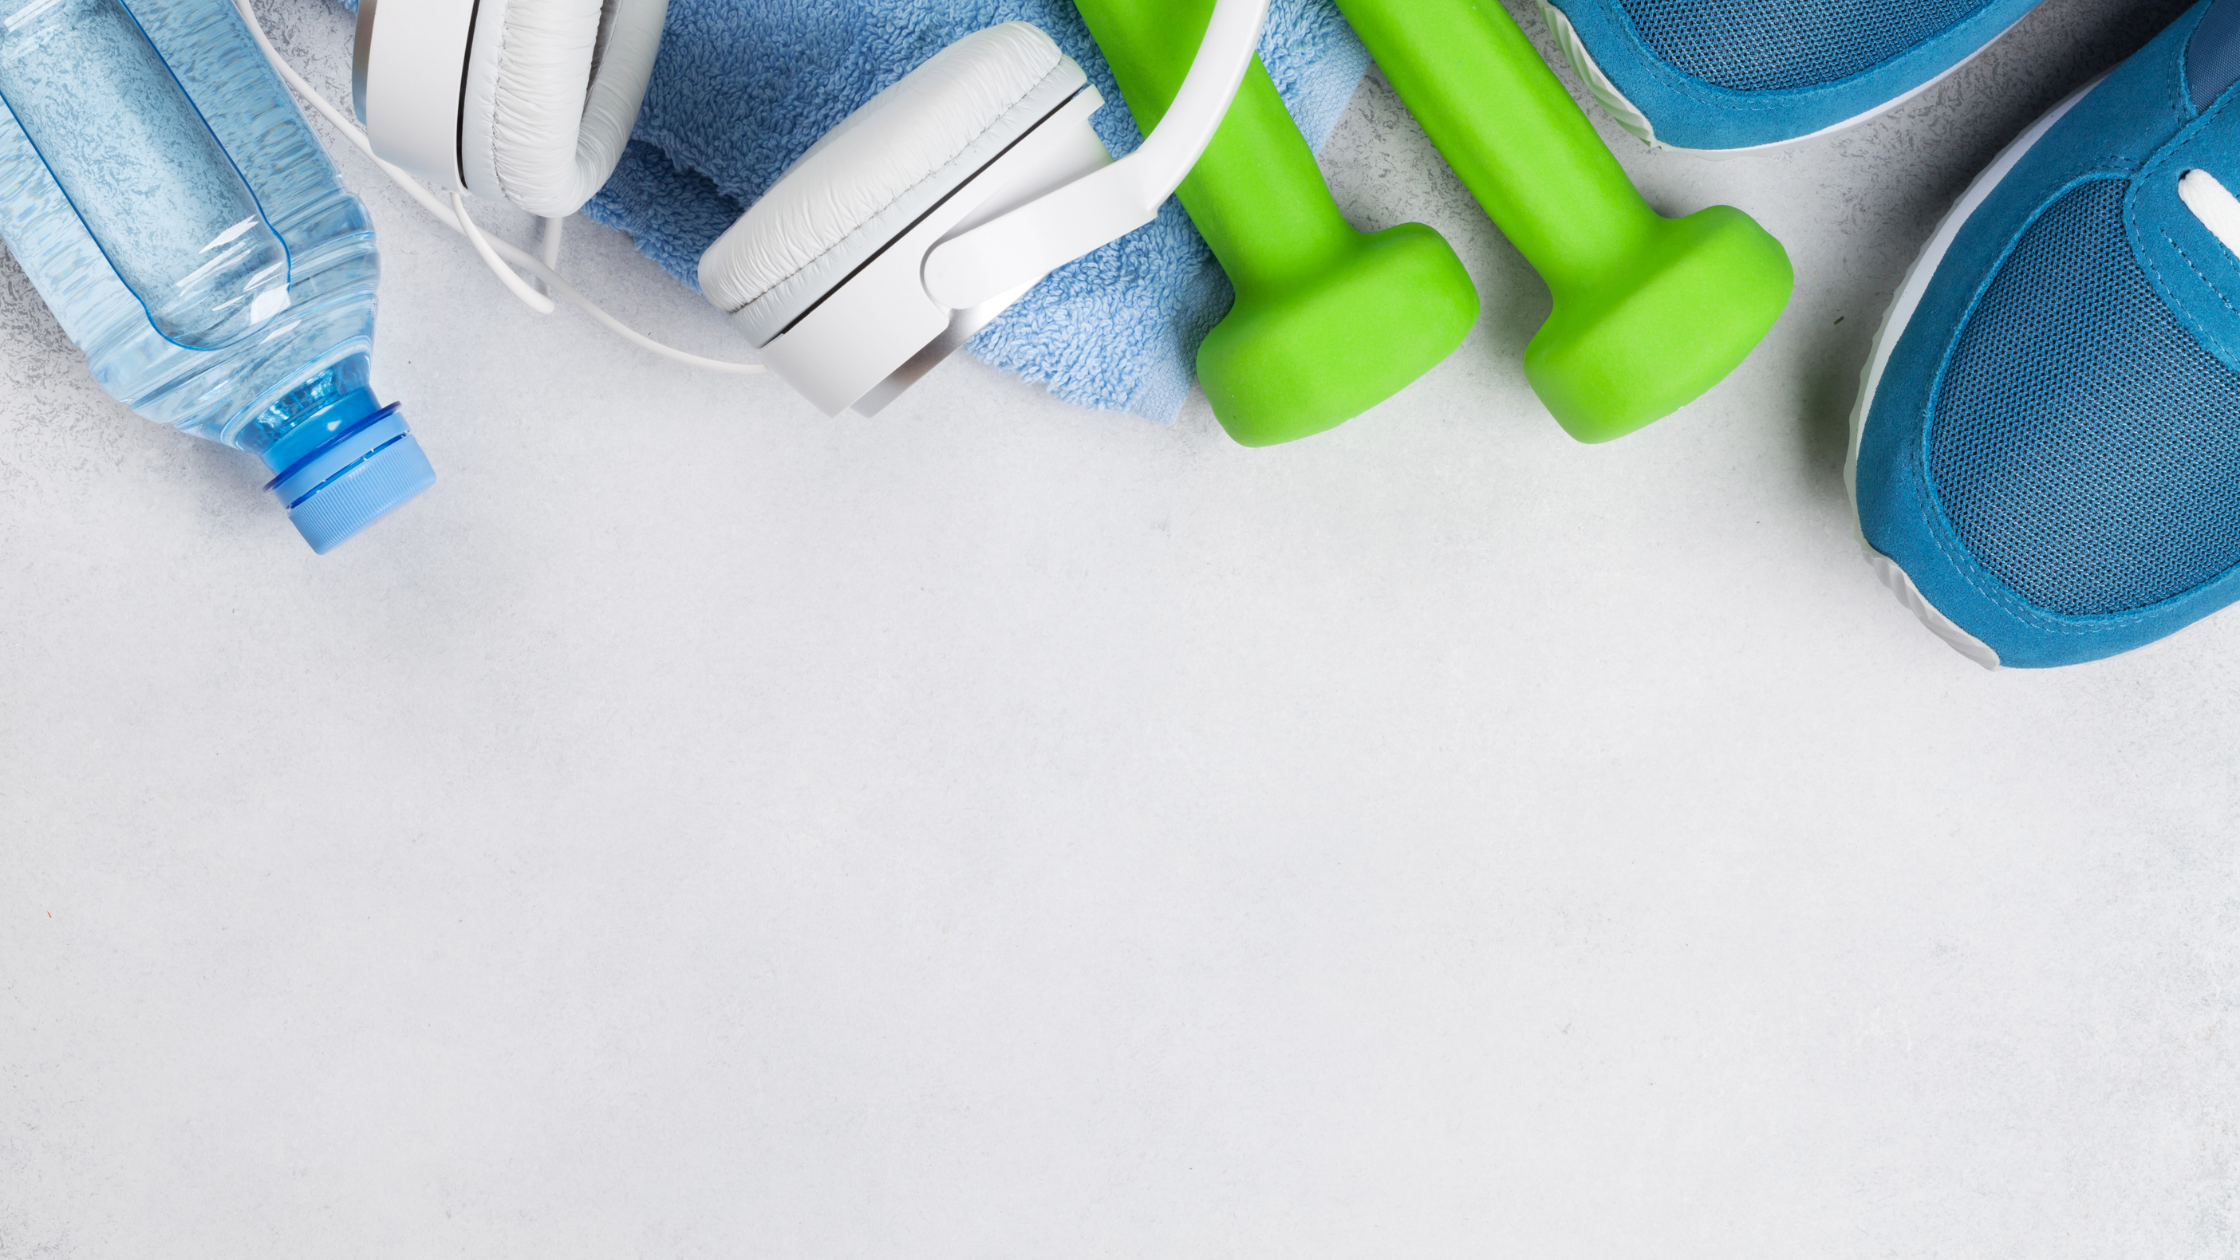 4 Simple Activities to Start Improving Your Fitness Today